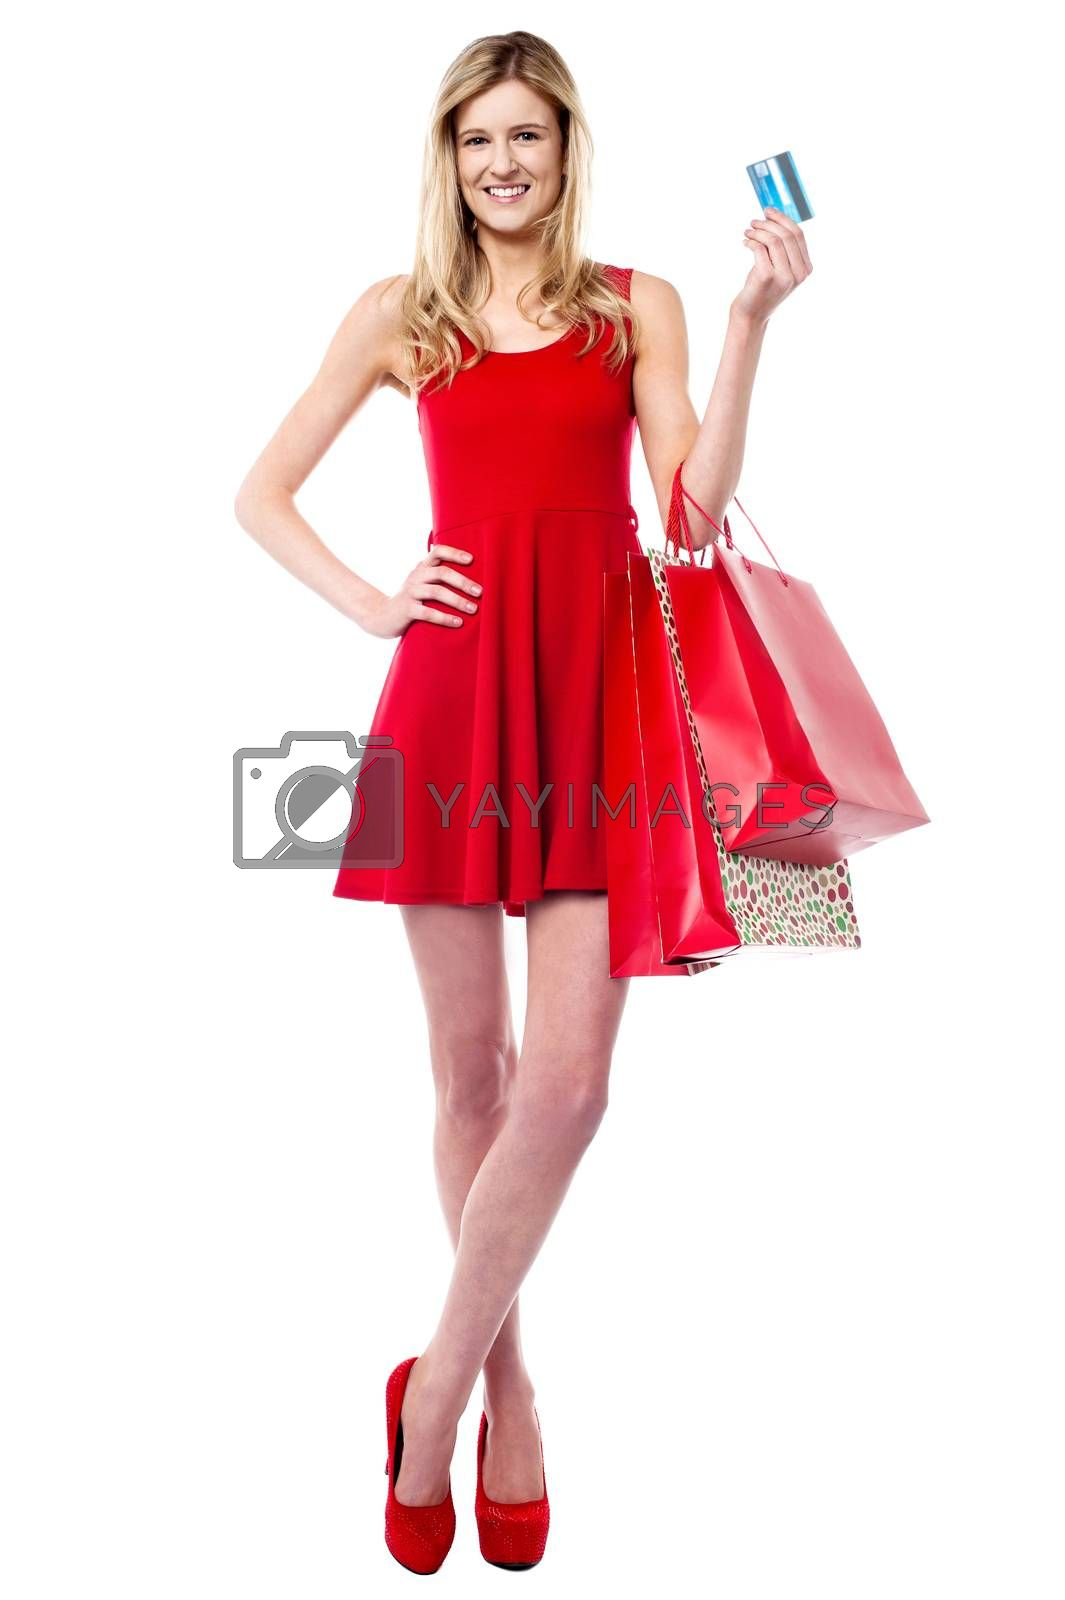 Fashion lady with shopping bags holding credit card and posing in style